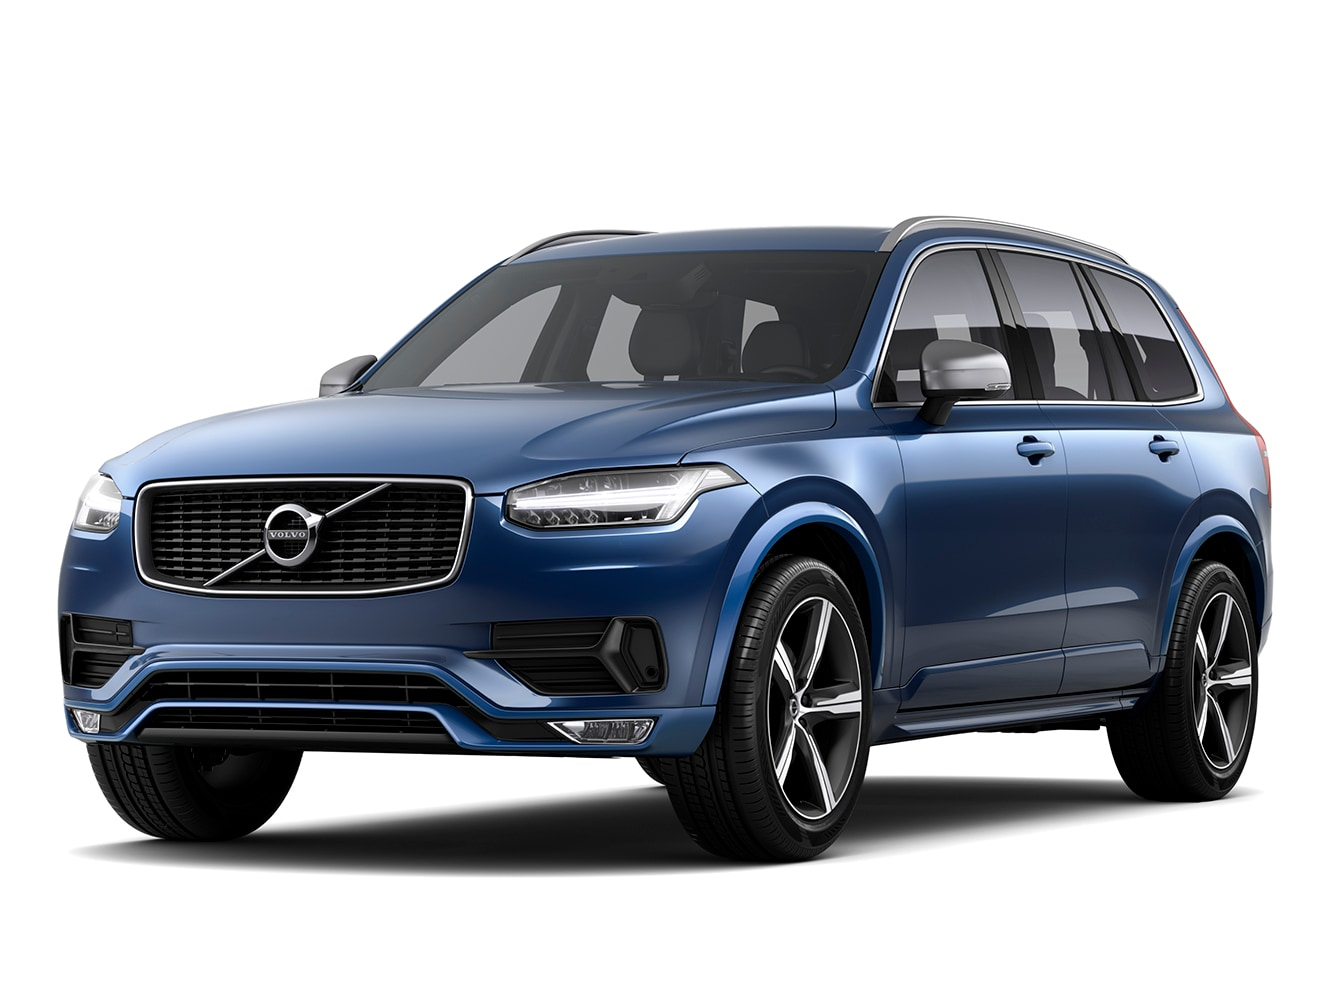 New Volvo Suv >> XC90 | Volvo Cars